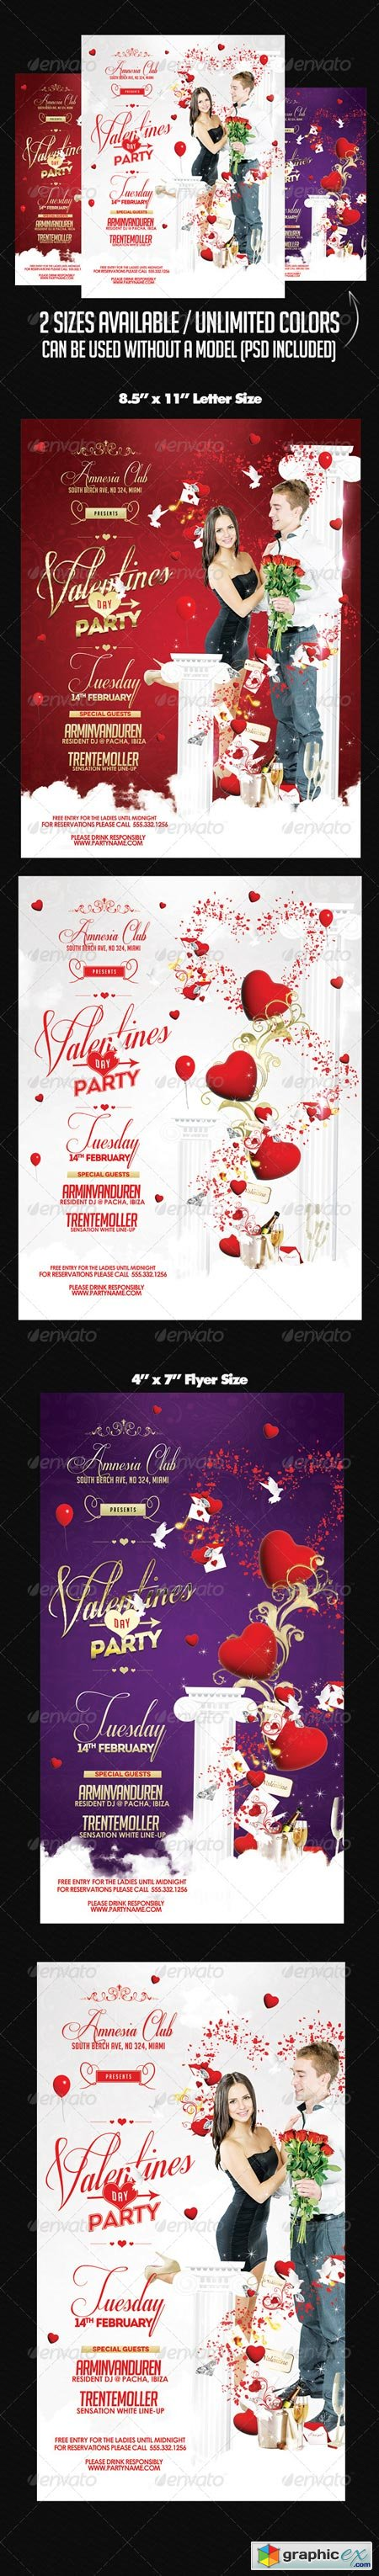 Valentines Party 6507854